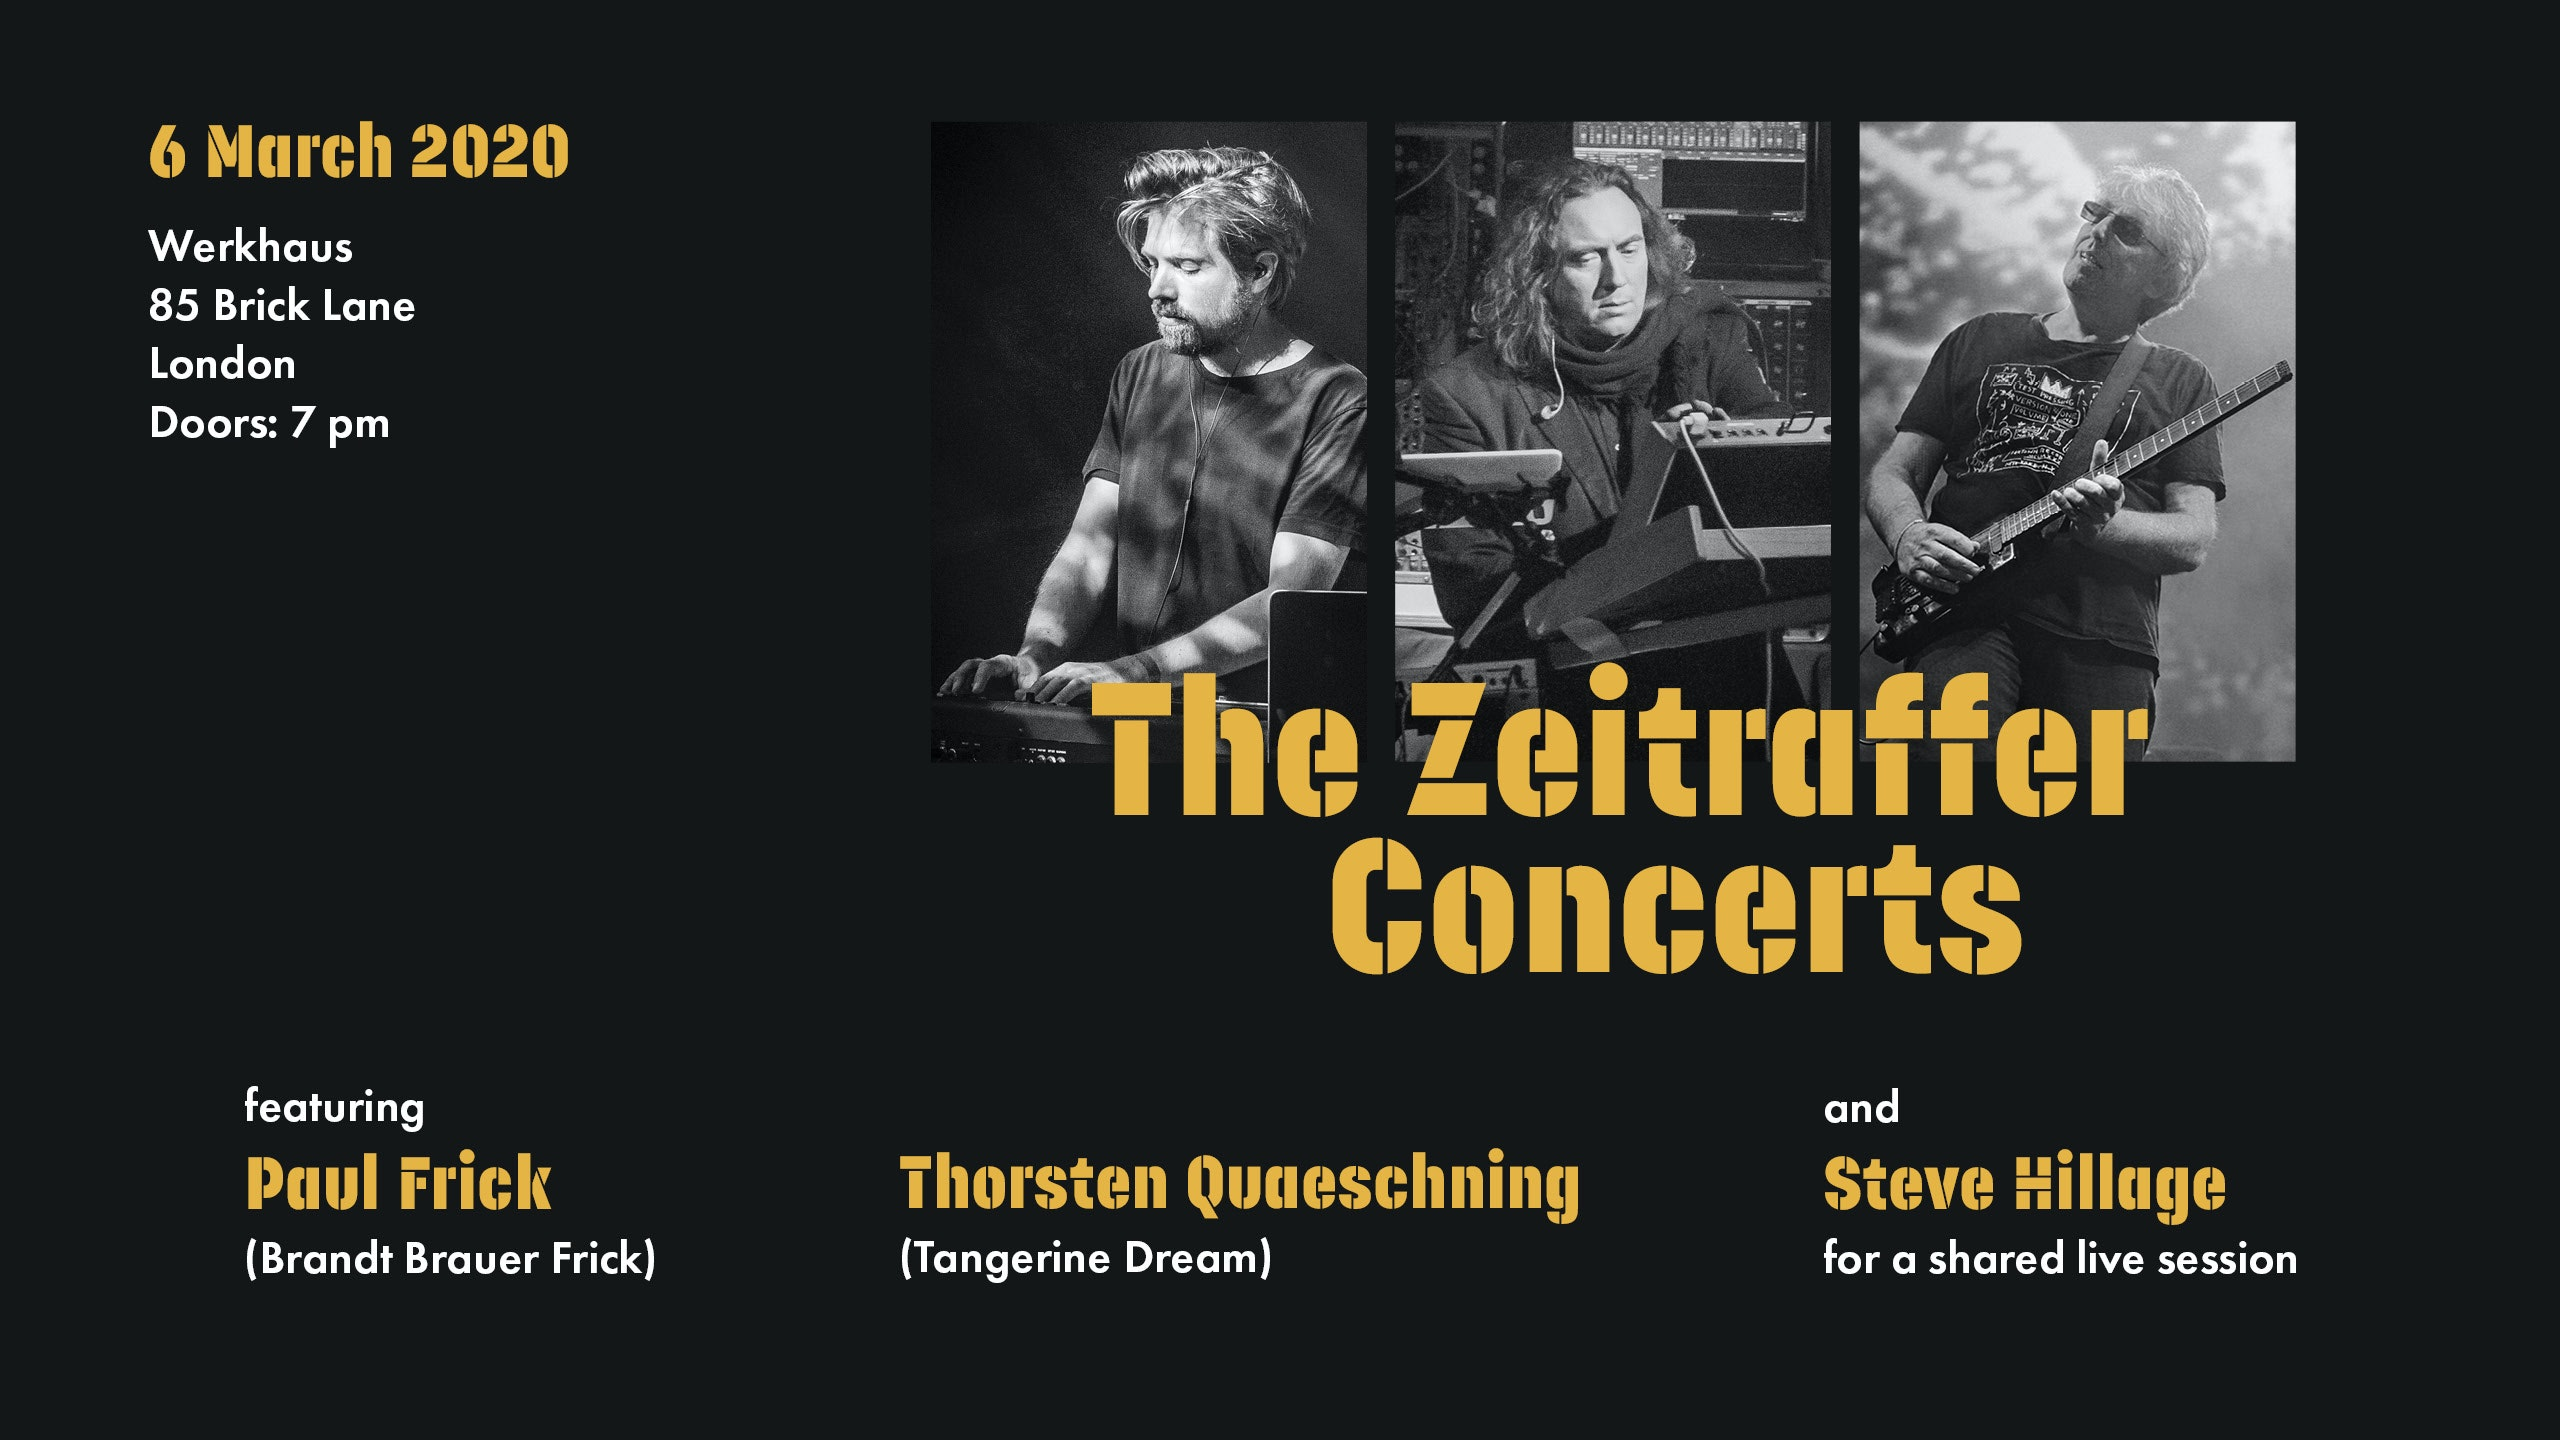 The Zeitraffer Concerts: Thorsten Quaeschning, Paul Frick & Steve Hillage